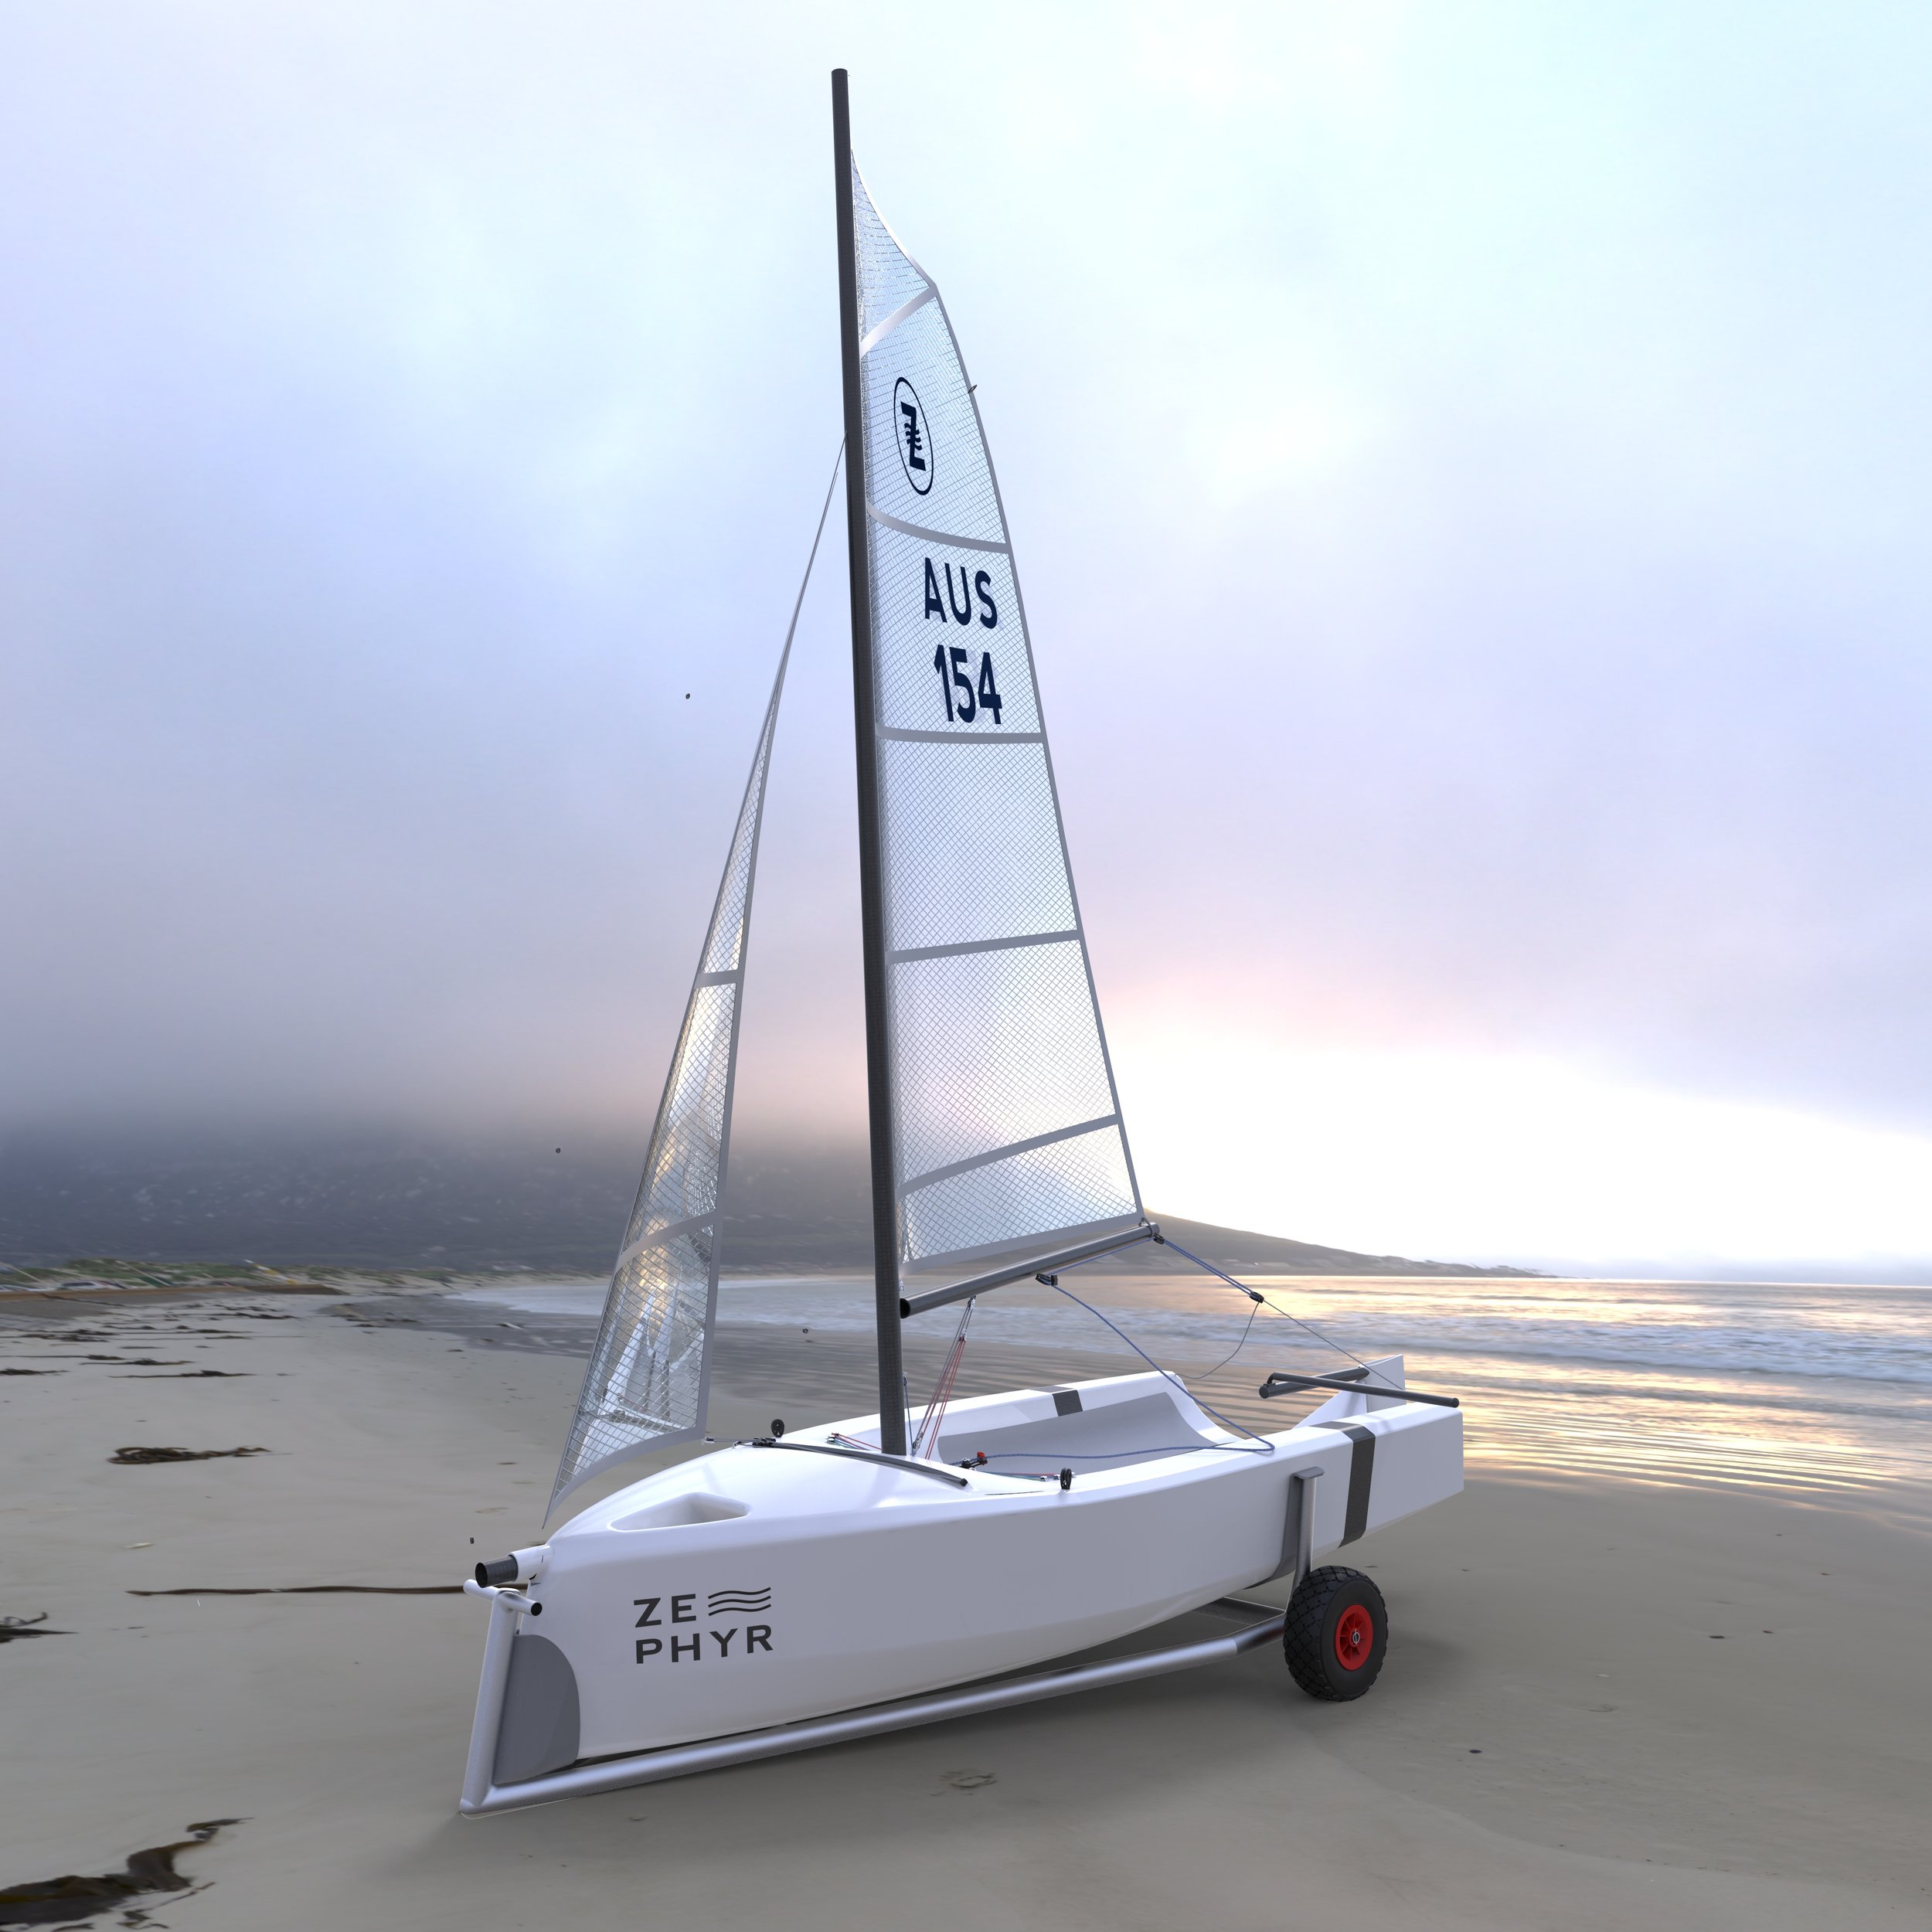 boat Renders beach.4328.jpg